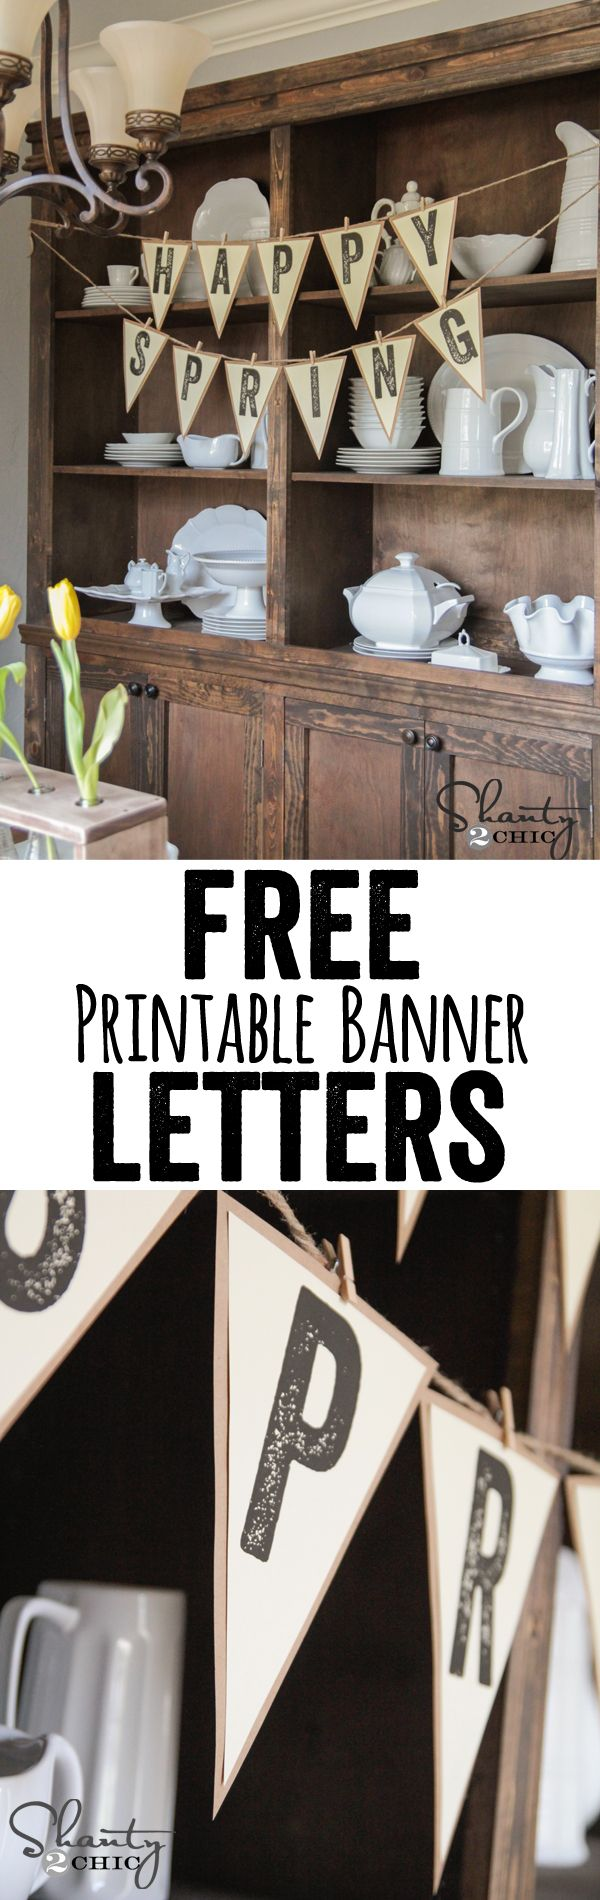 www Shanty   Chic com  LOVE holiday  a for room Banners at online or banner these   canada Printable Print FREE    FREE store Letter any party for